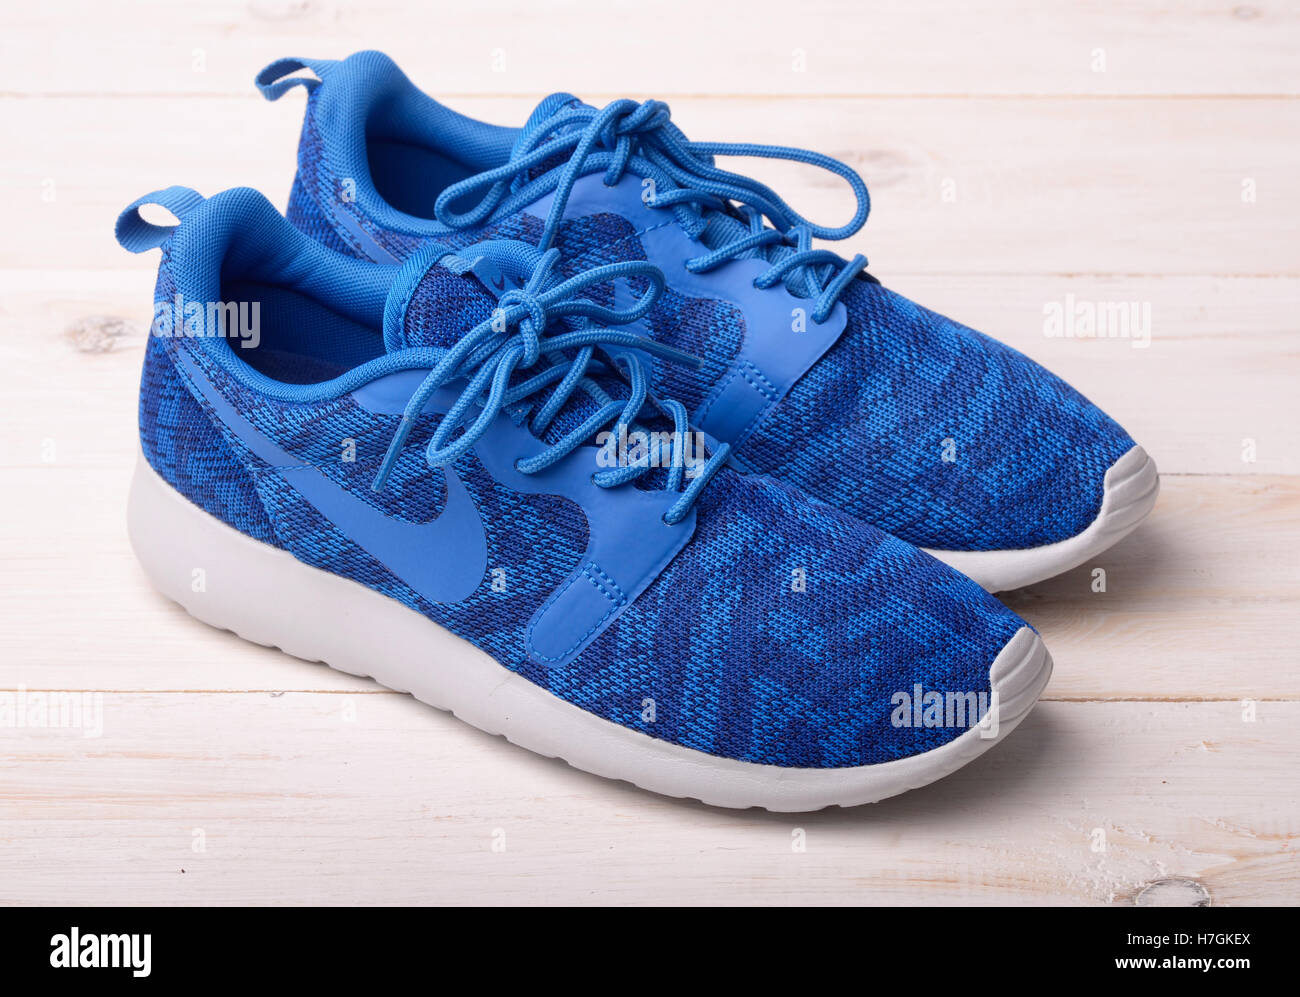 SAMARA, RUSSIA - August 28, 2016: Blue Nike sneakers for running, football, training, showing the Nike logo, illustrative - Stock Image